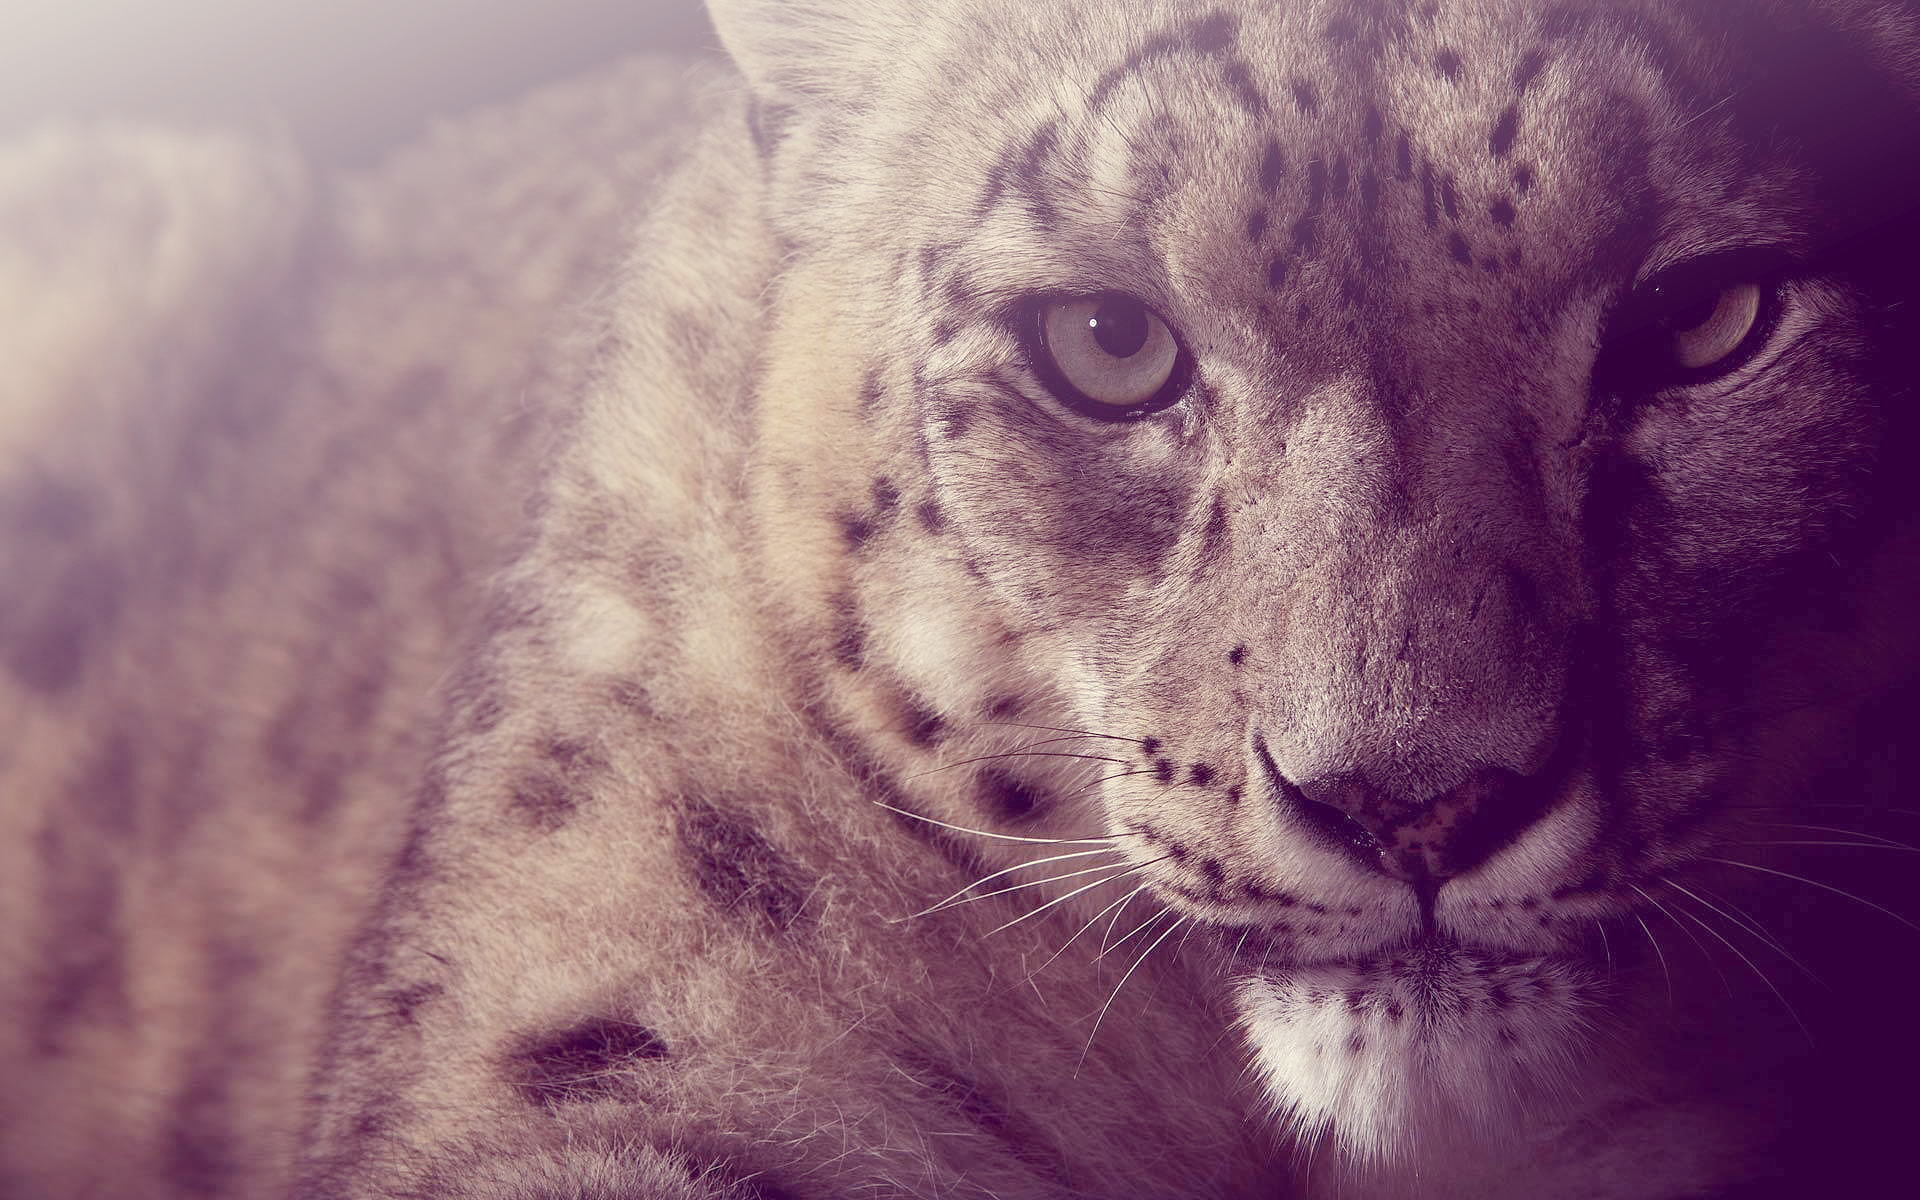 Snow leopard computer wallpapers desktop backgrounds for Animal wallpaper for walls